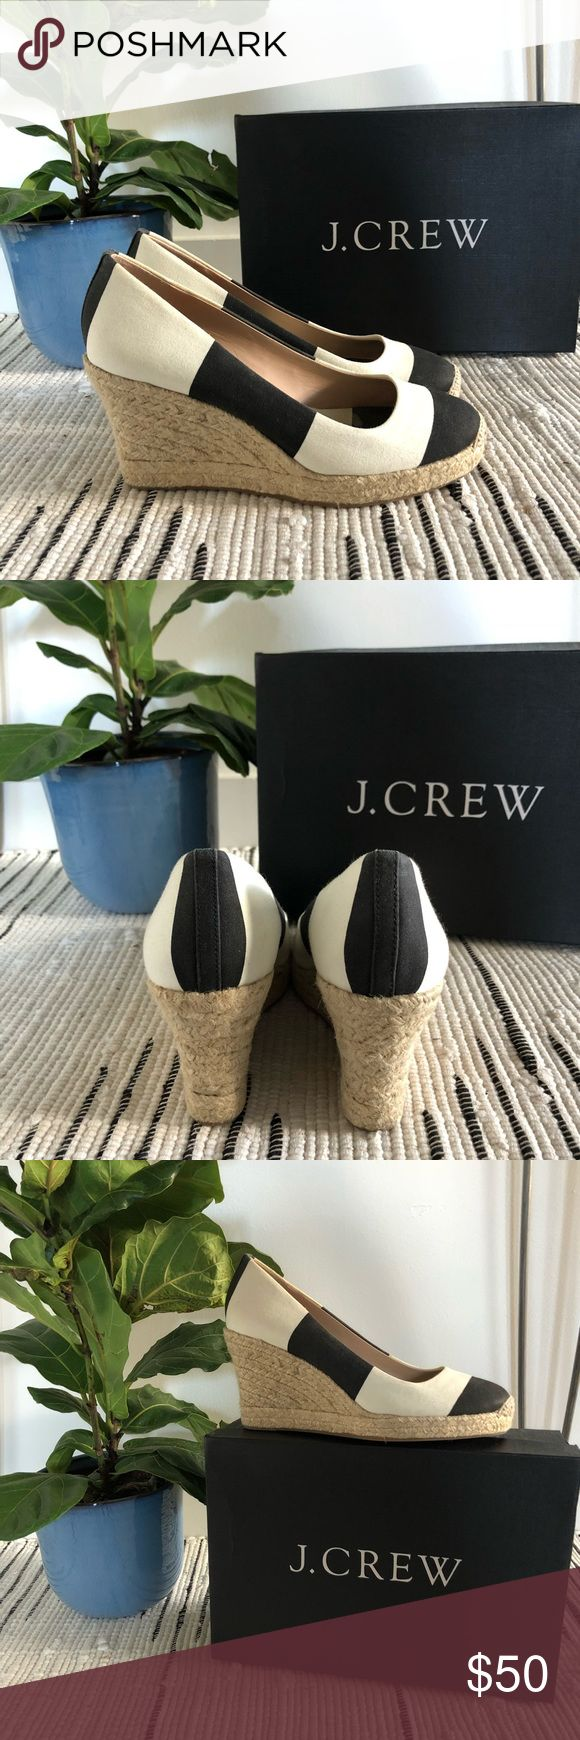 J. CREW SEVILLE STRIPE ESPADRILLES - SZ. 8 J. Crew round toe espadrilles perfect for the summer months. Classic wide stripe canvas upper, jute wedge, leather lining. 3 1/2 inch heel w/ platform for an extra boost. Size 8. Light wear. Original box included. J. Crew Shoes Espadrilles